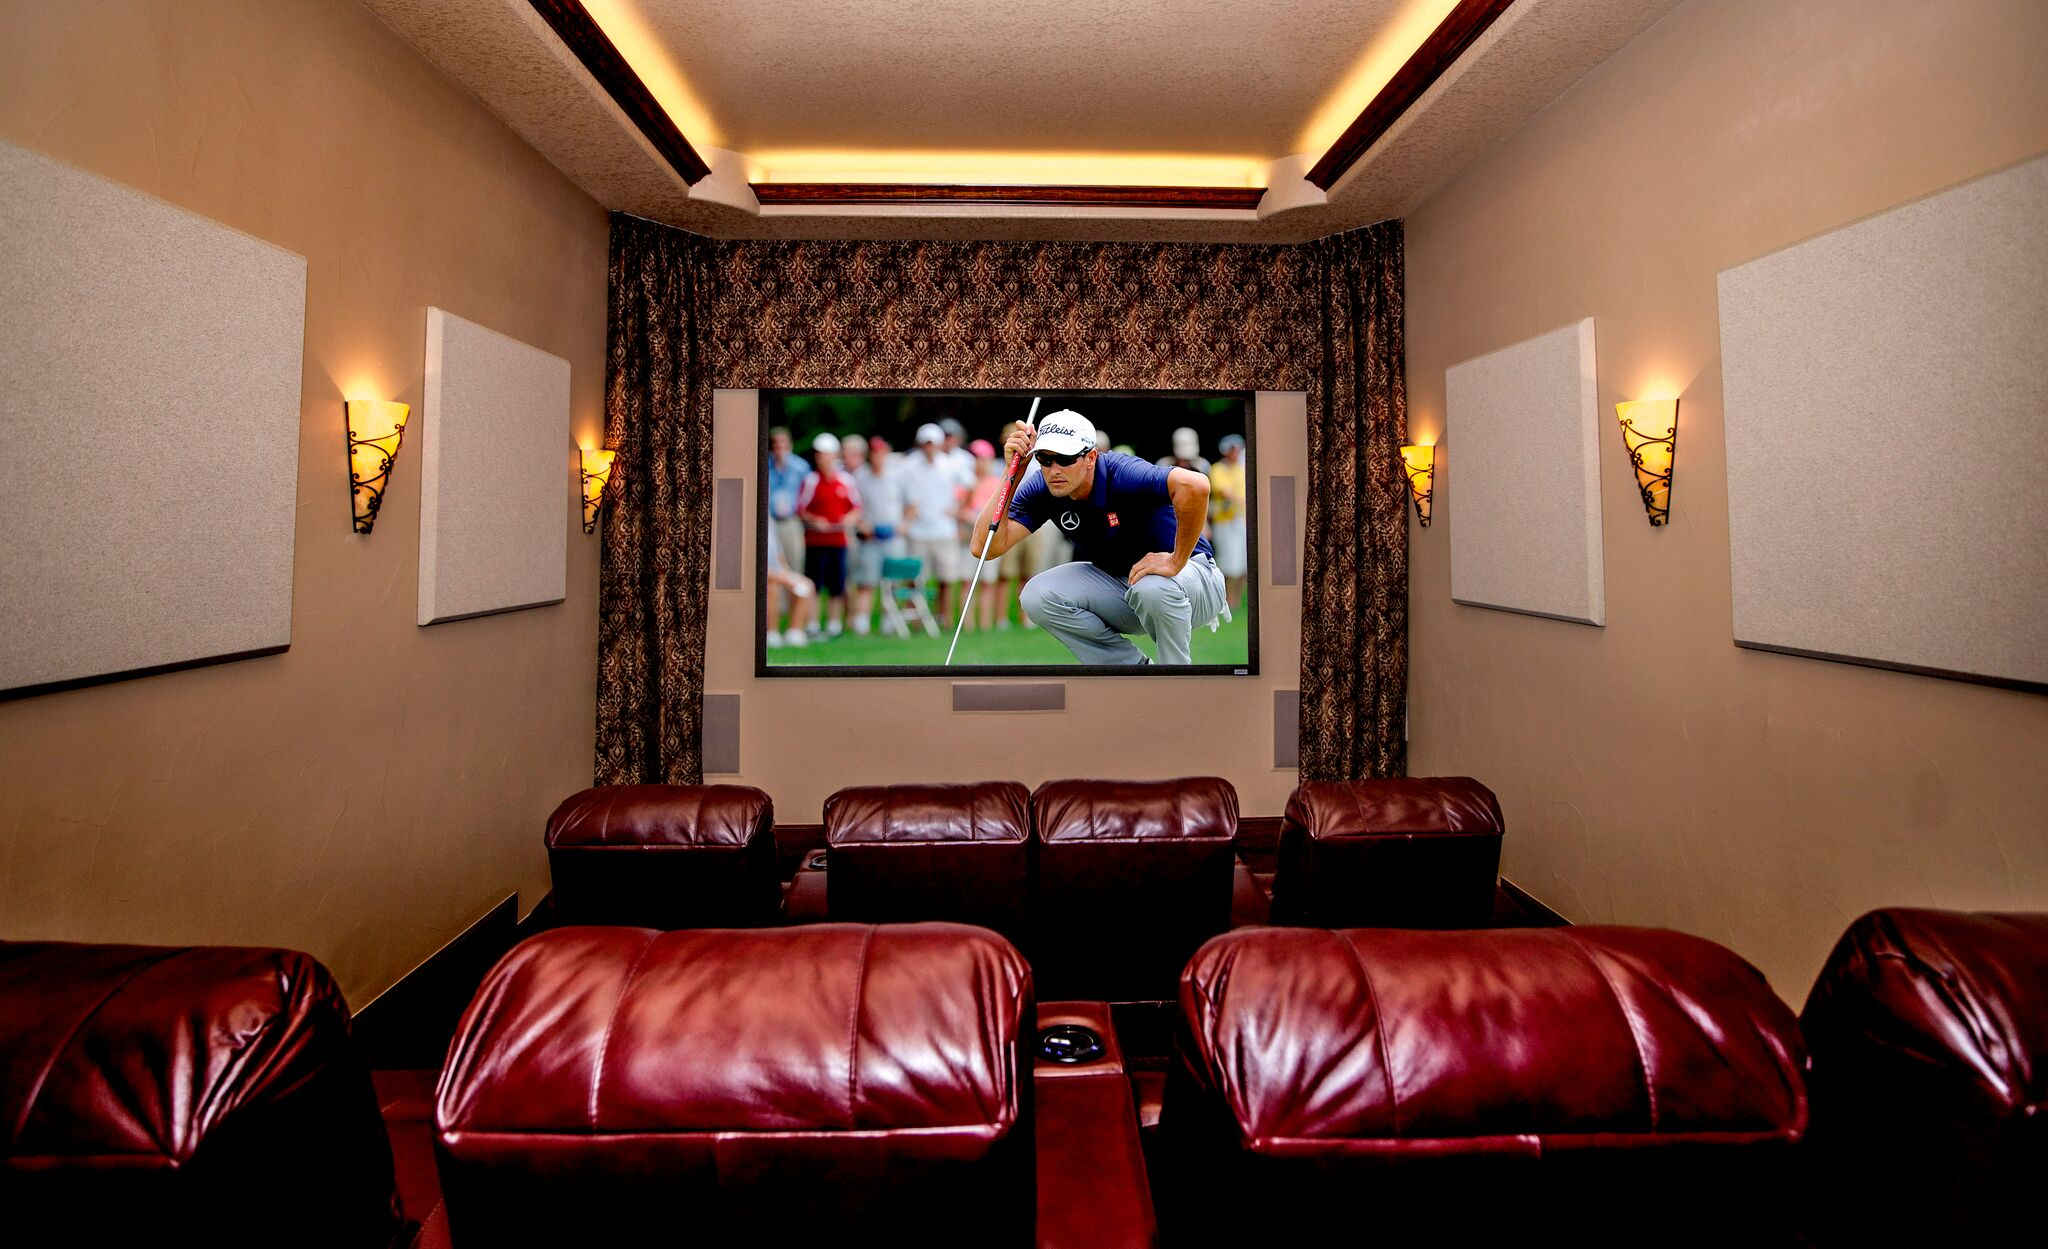 5 Home Theater Design Upgrades for Your Luxury Home Projection Home Theater Design on home theater projector 1080p, home theater motion, home theater screen, home theater audio setup, home theater television, home theater product, home theater projector packages, home theater projector tv, home theater art, home theater computer, home theater size, home theater drawing, home theater texture, home theater set, home theater orientation, home theater sound, home theater wall, home theater color, home theater building, home theater view,